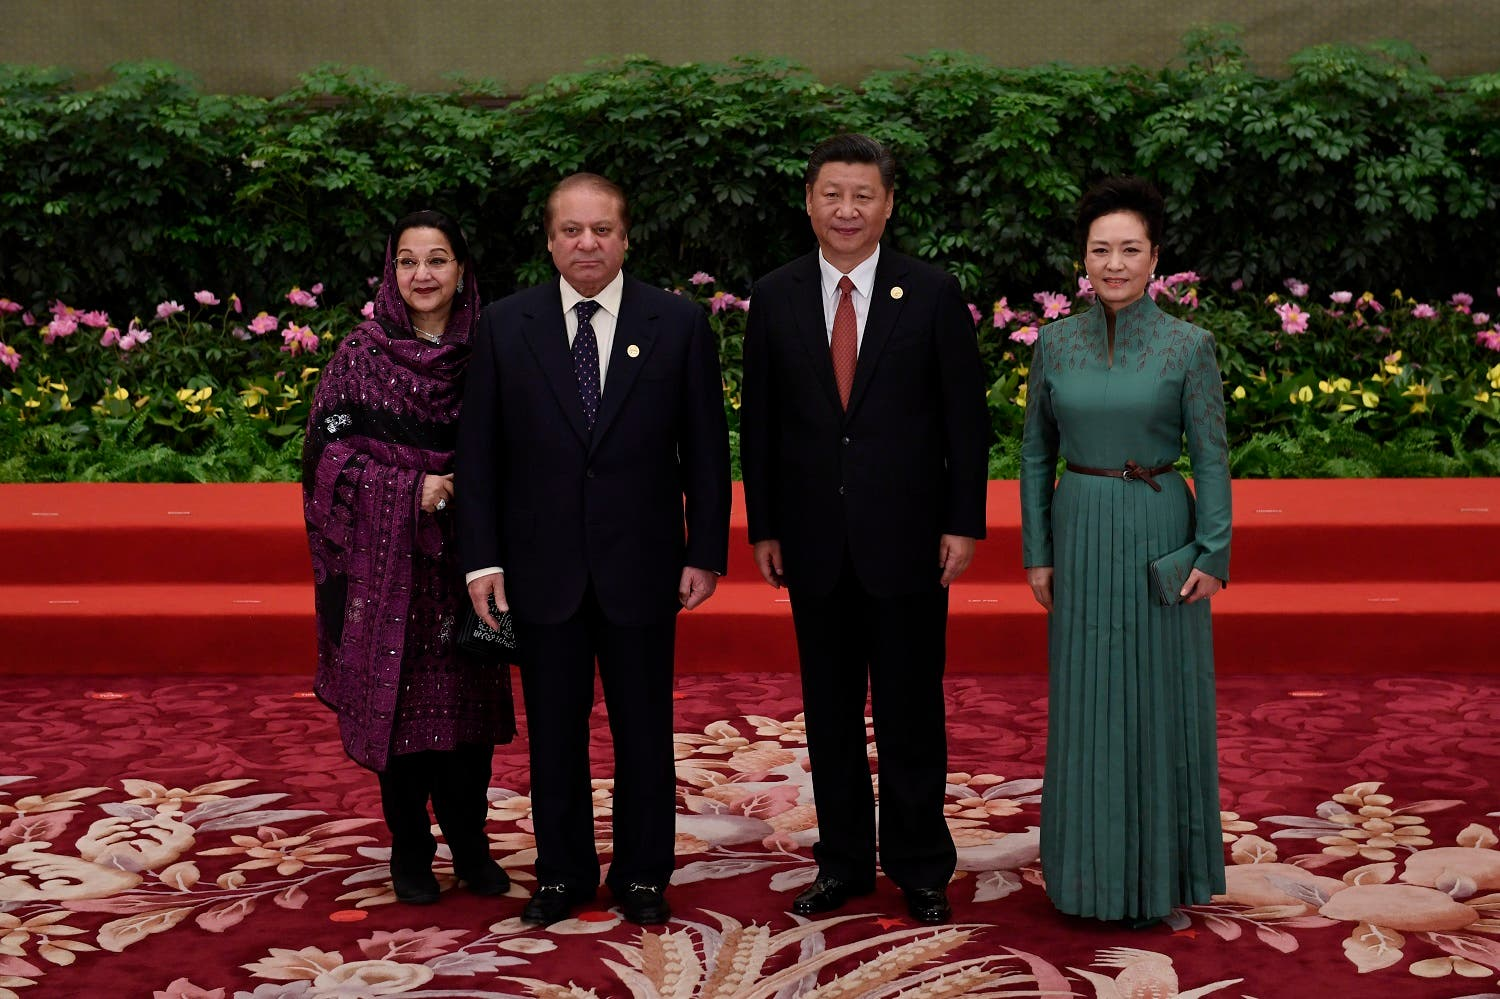 Pakistan's Prime Minister Nawaz Sharif and his wife Kalsoom Nawaz Sharif pose with Chinese President Xi Jinping and his wife Peng Liyuan (R) during a welcome ceremony for leaders attending the Belt and Road Forum, in Beijing's Great Hall of the People on May 14, 2017. (AFP)